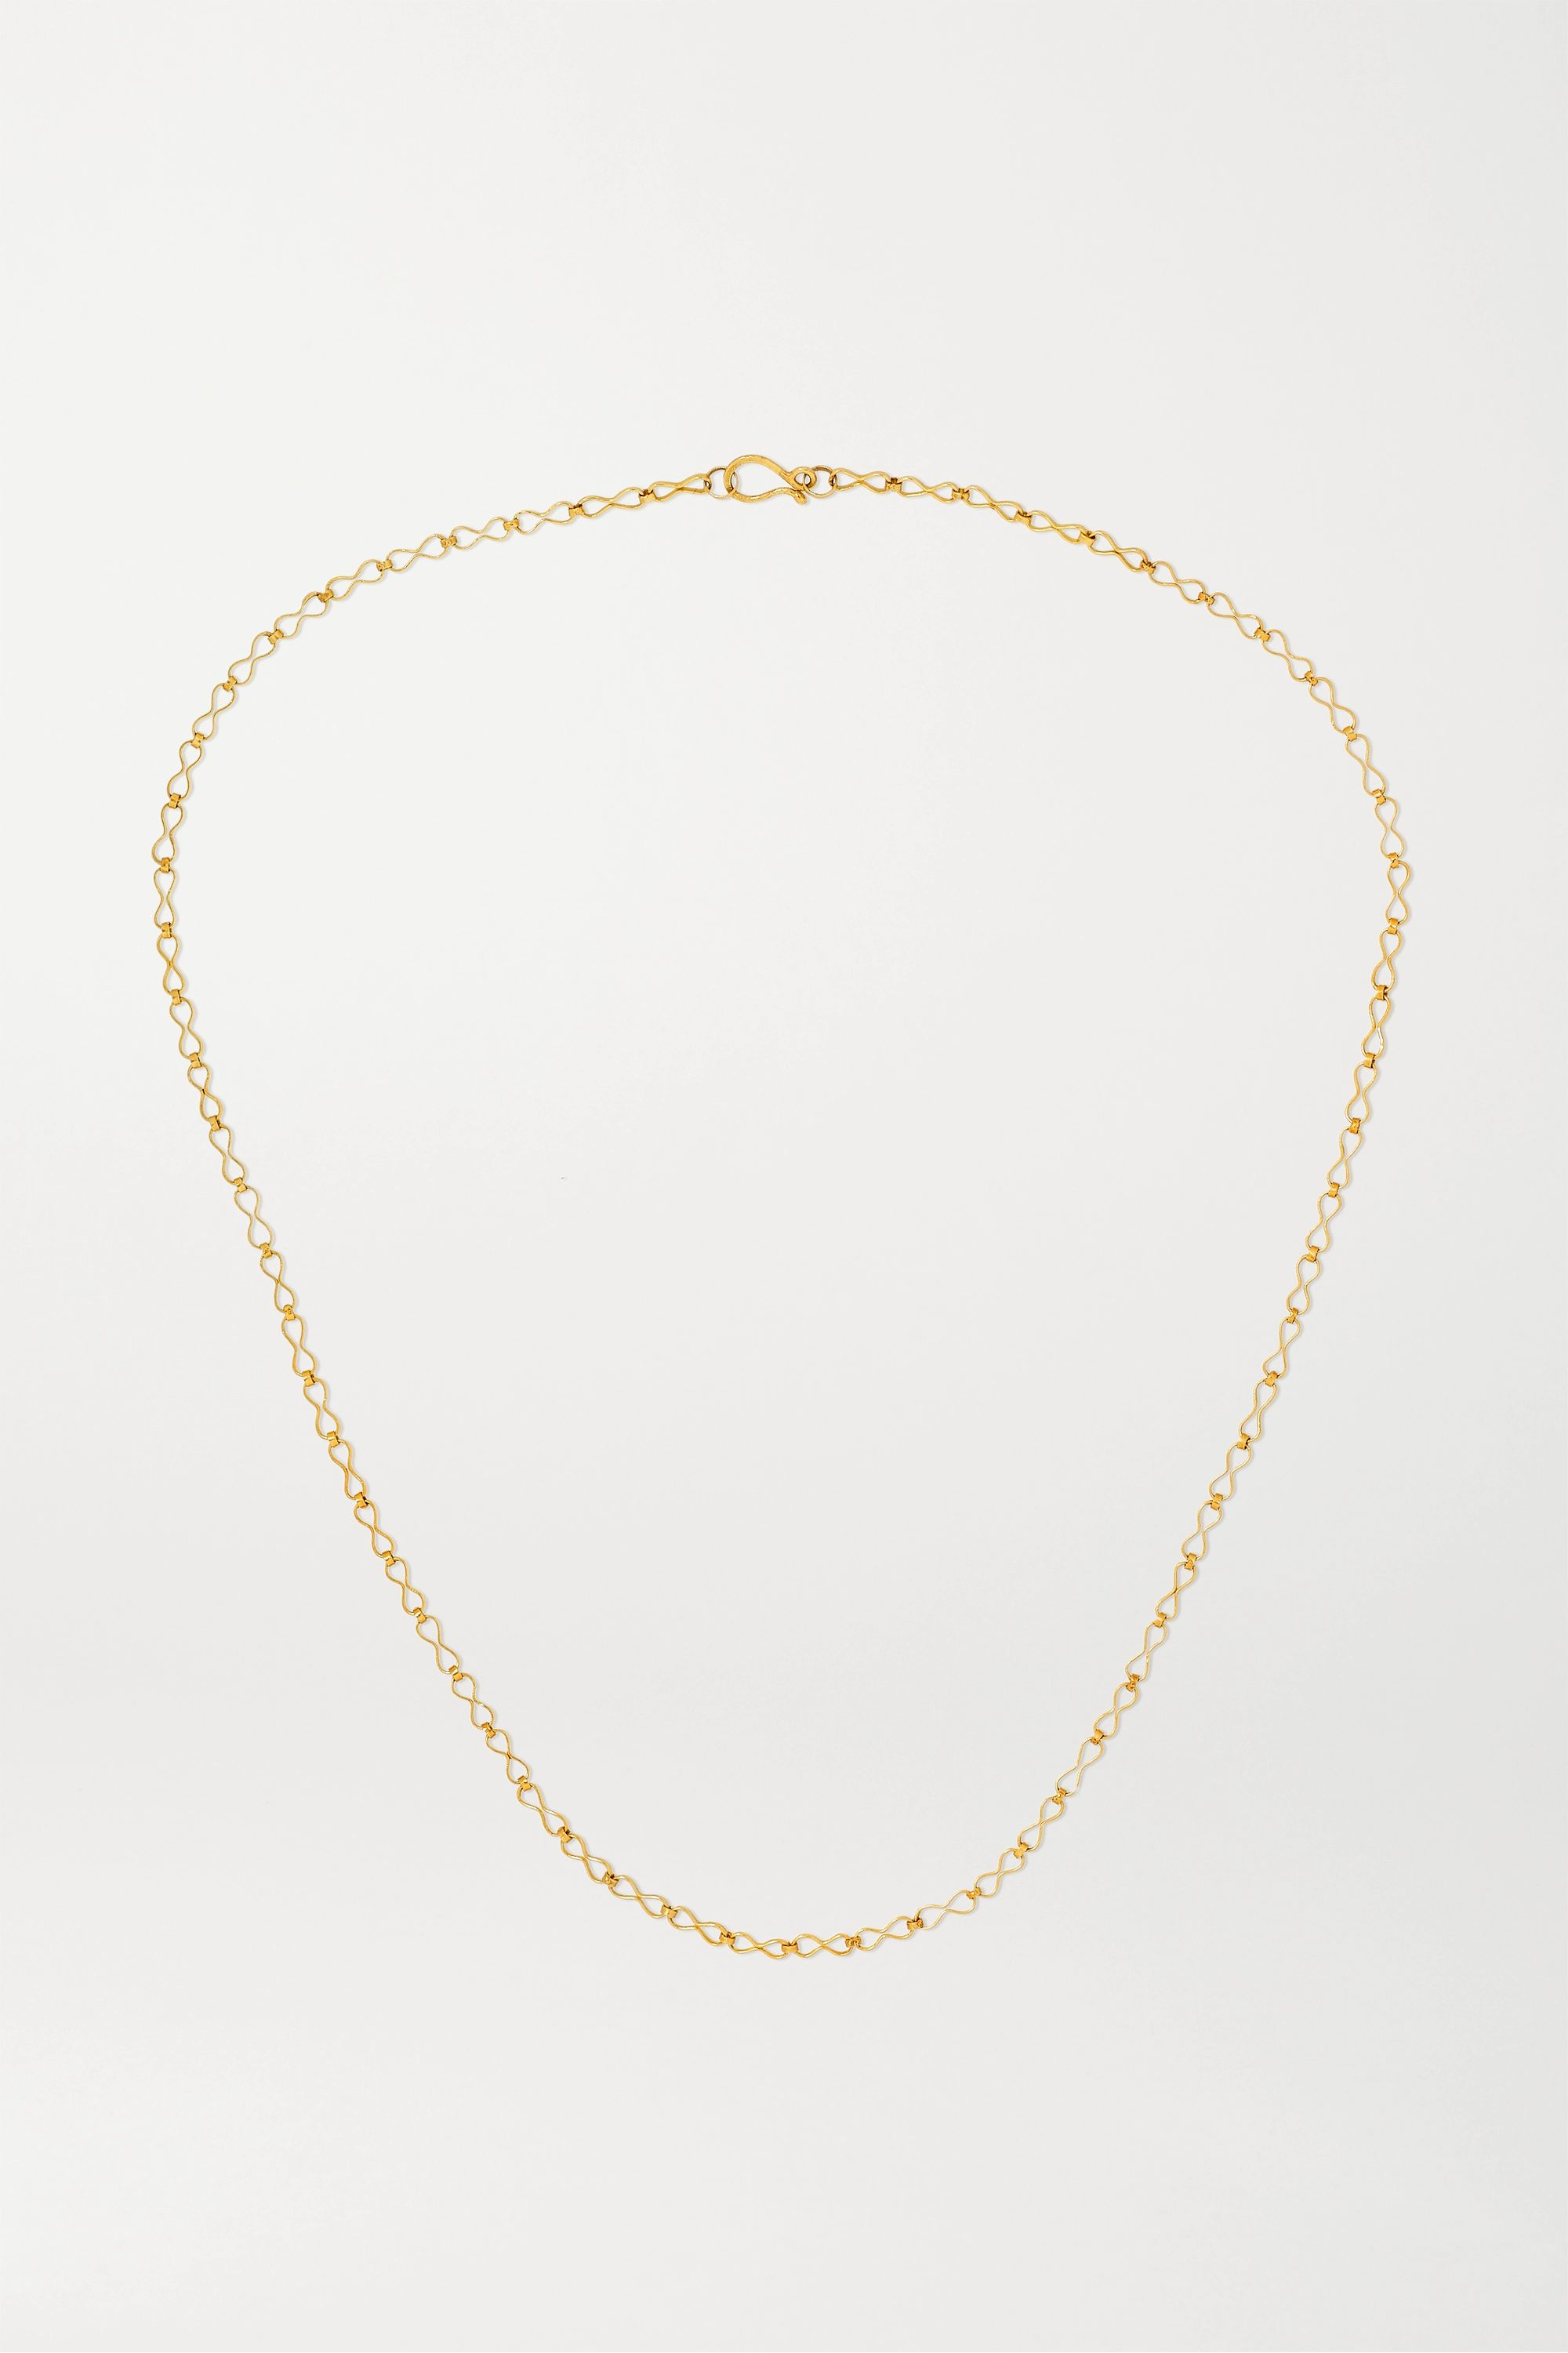 Pippa Small 18-karat gold necklace